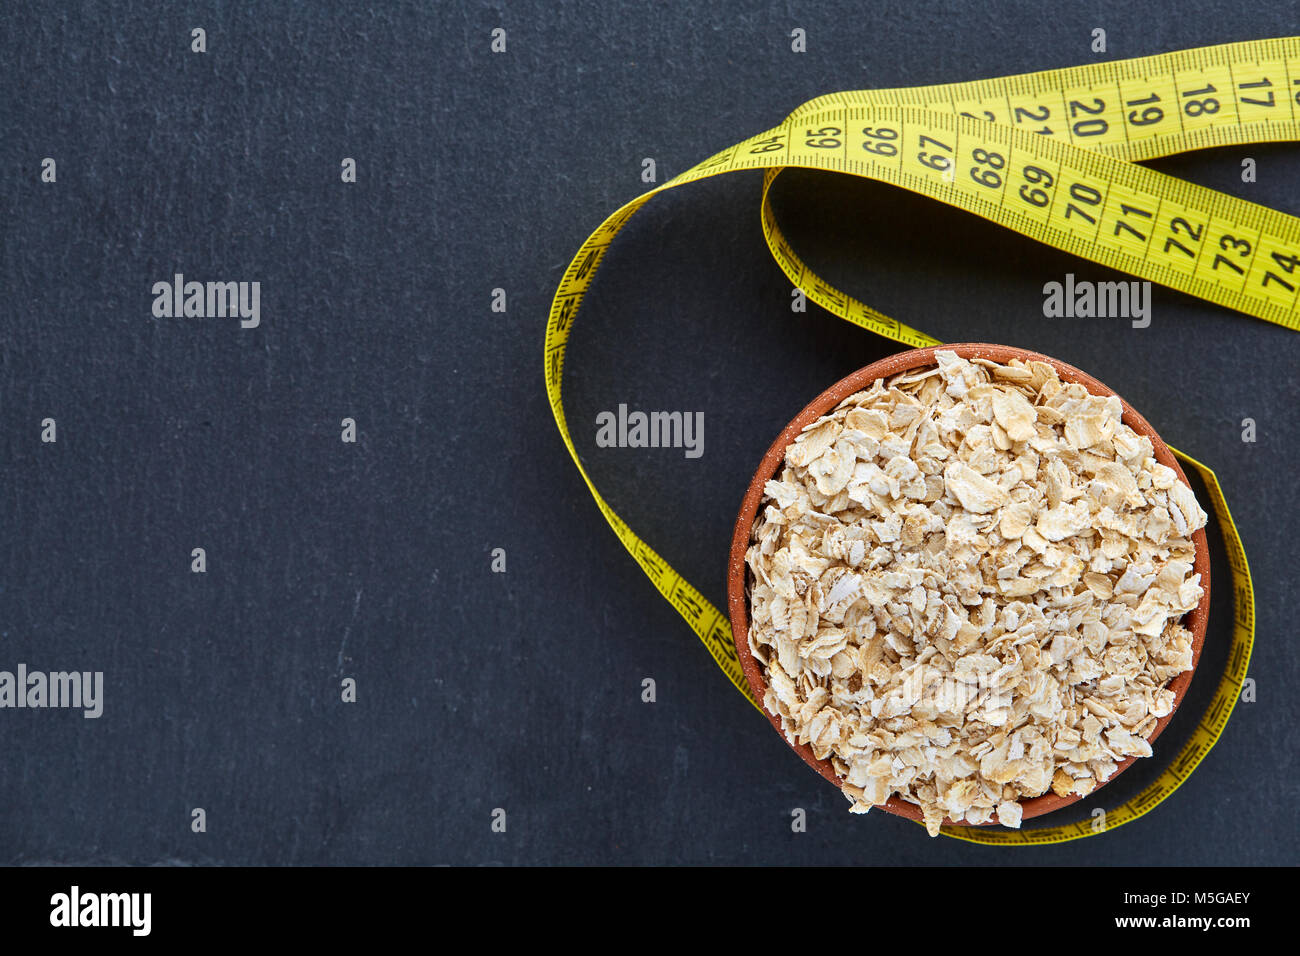 Top view close-up picture of a ceramic clay dark brown bowl of oatmeal hugged with long yellow flexible ruler isolated - Stock Image